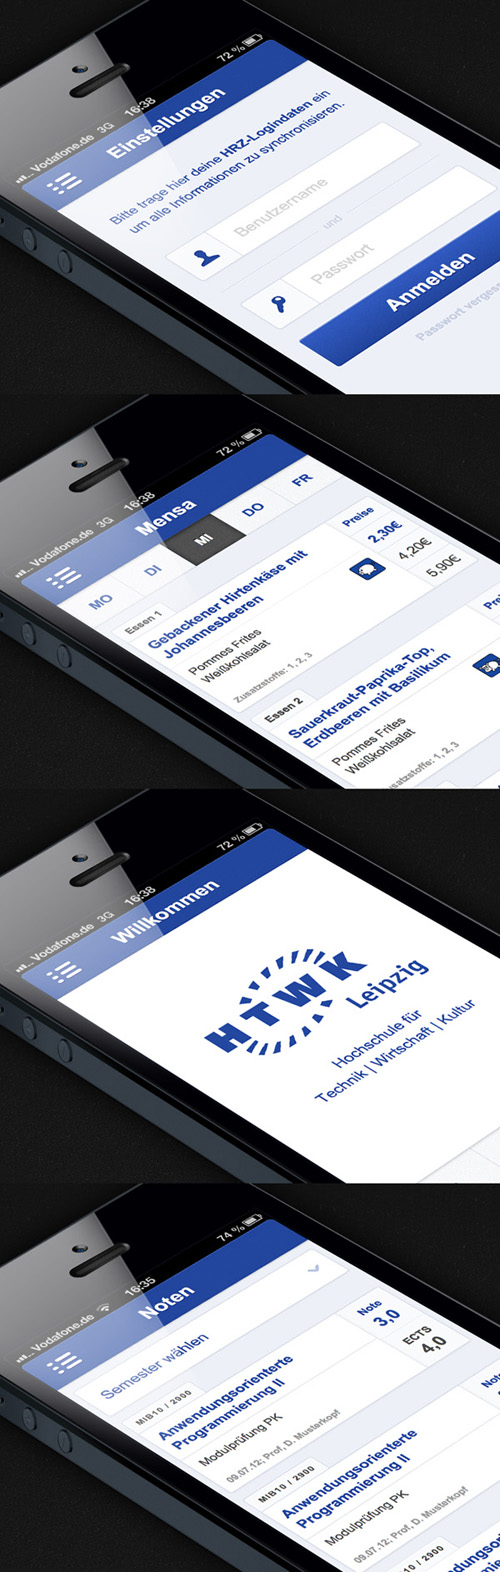 Flat Mobile UI Design and UX-46